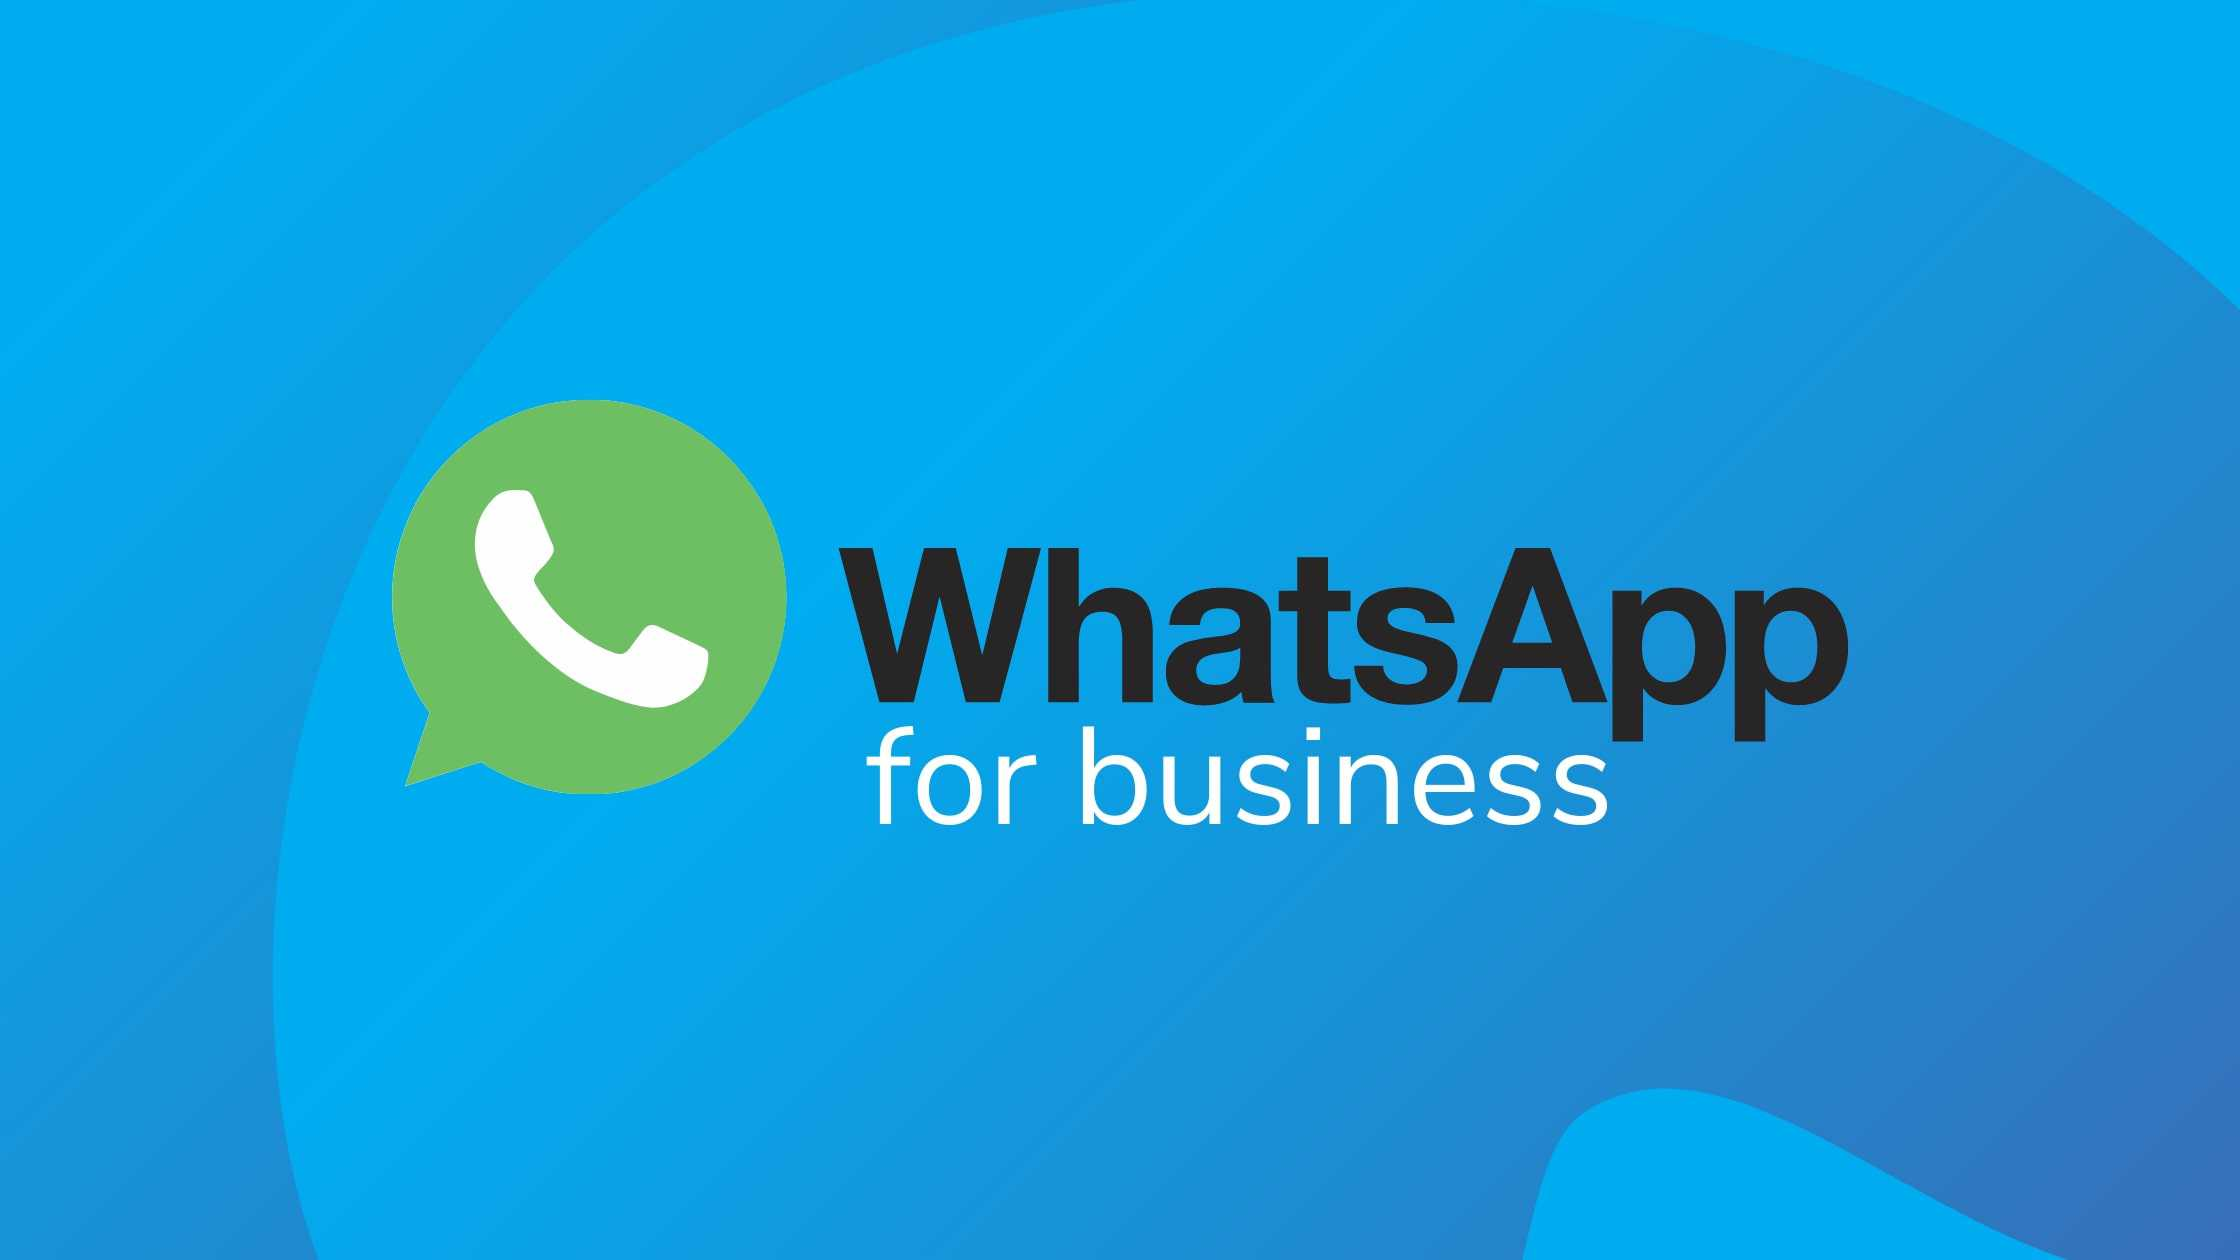 WHATSAPP FOR BUSINESS_ THE ULTIMATE MARKETING TOOL TO DRIVE TRAFFIC